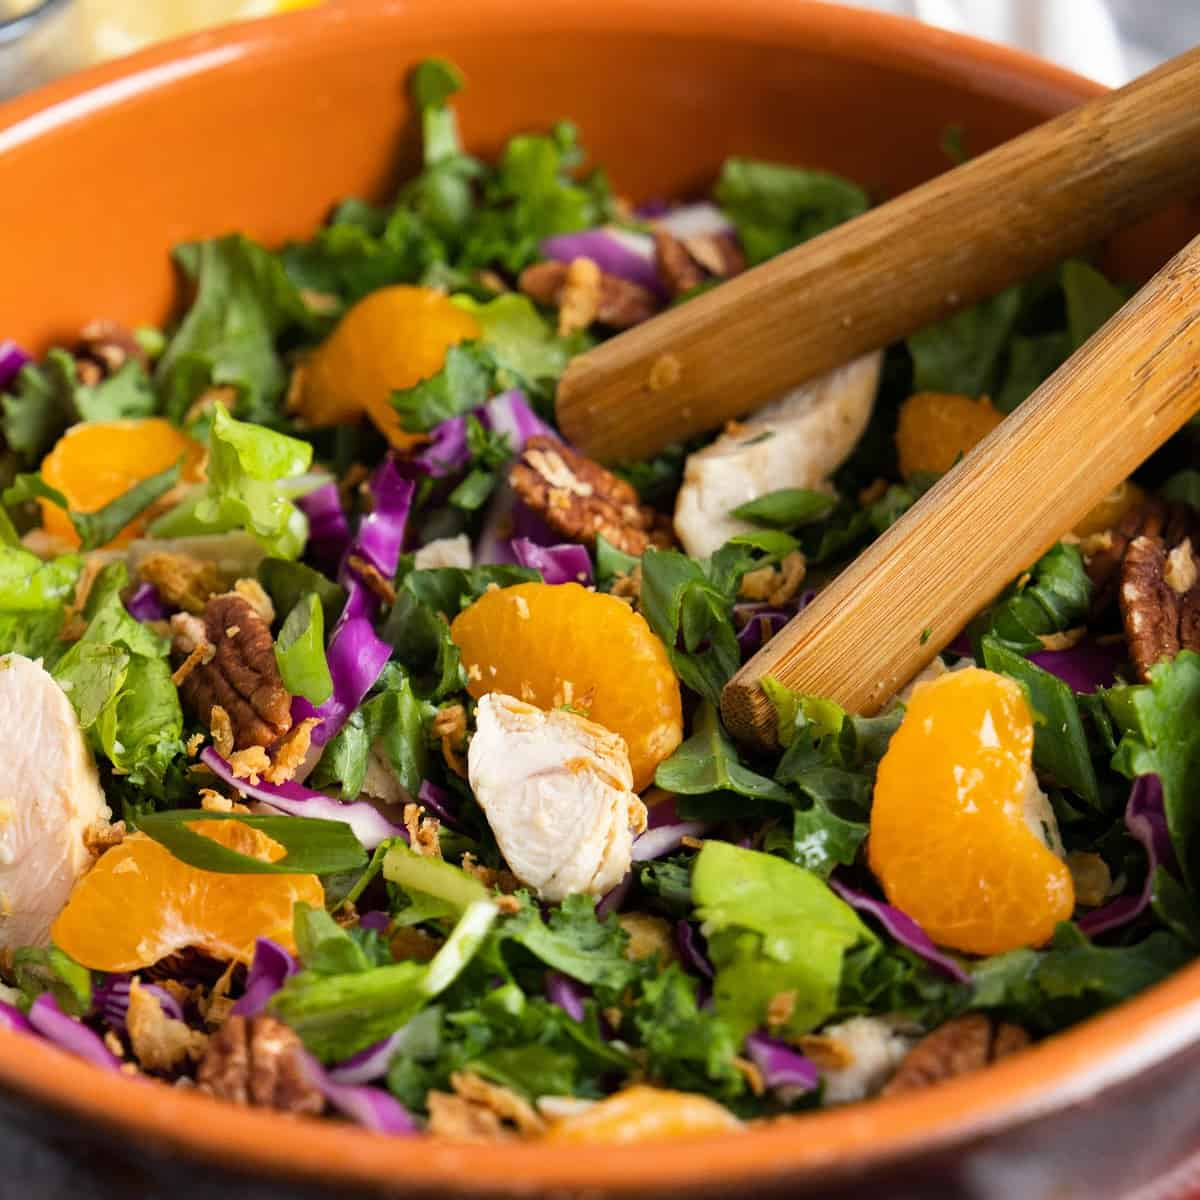 Mandarin Chicken Salad in a wooden bowl with tongs.